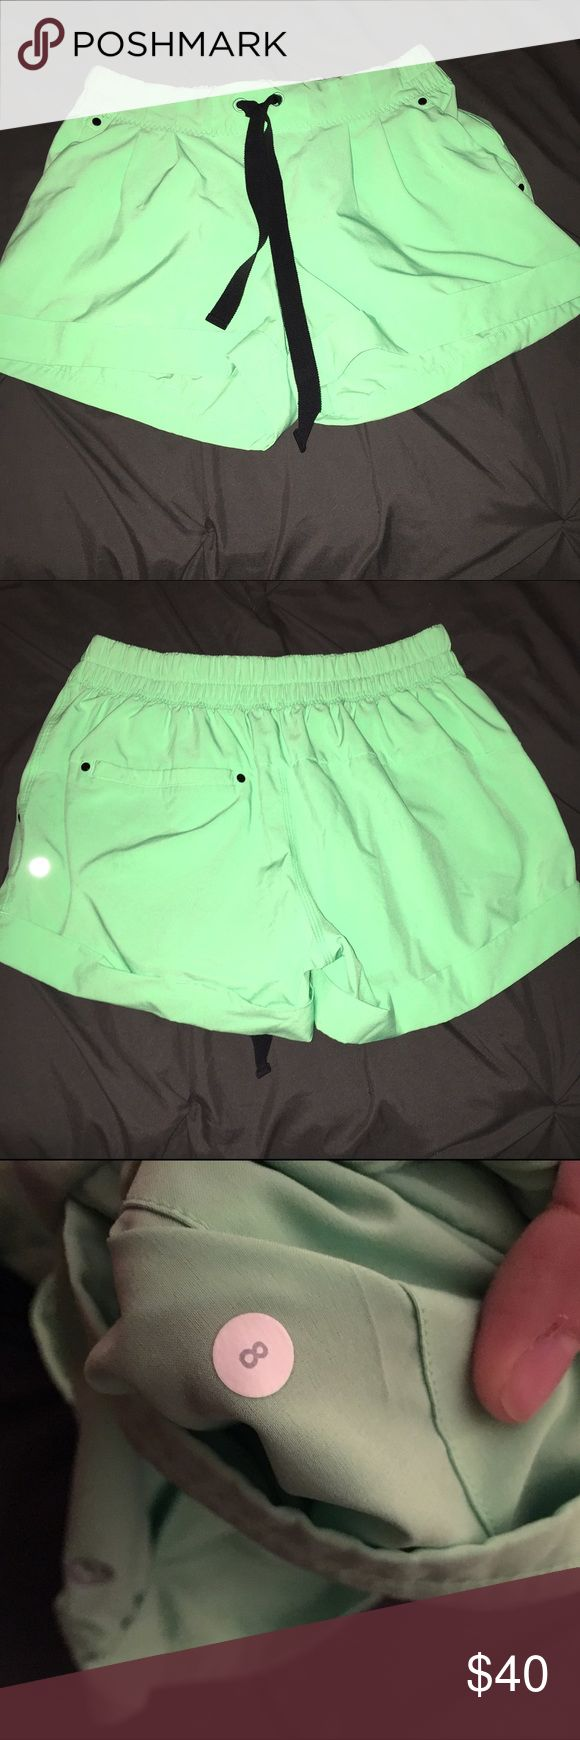 Neon Green Lululemon Shorts Neon Green Lululemon Shorts. GUC.  No damages, rips, or stains. Green shorts with black draw string waist. lululemon athletica Shorts